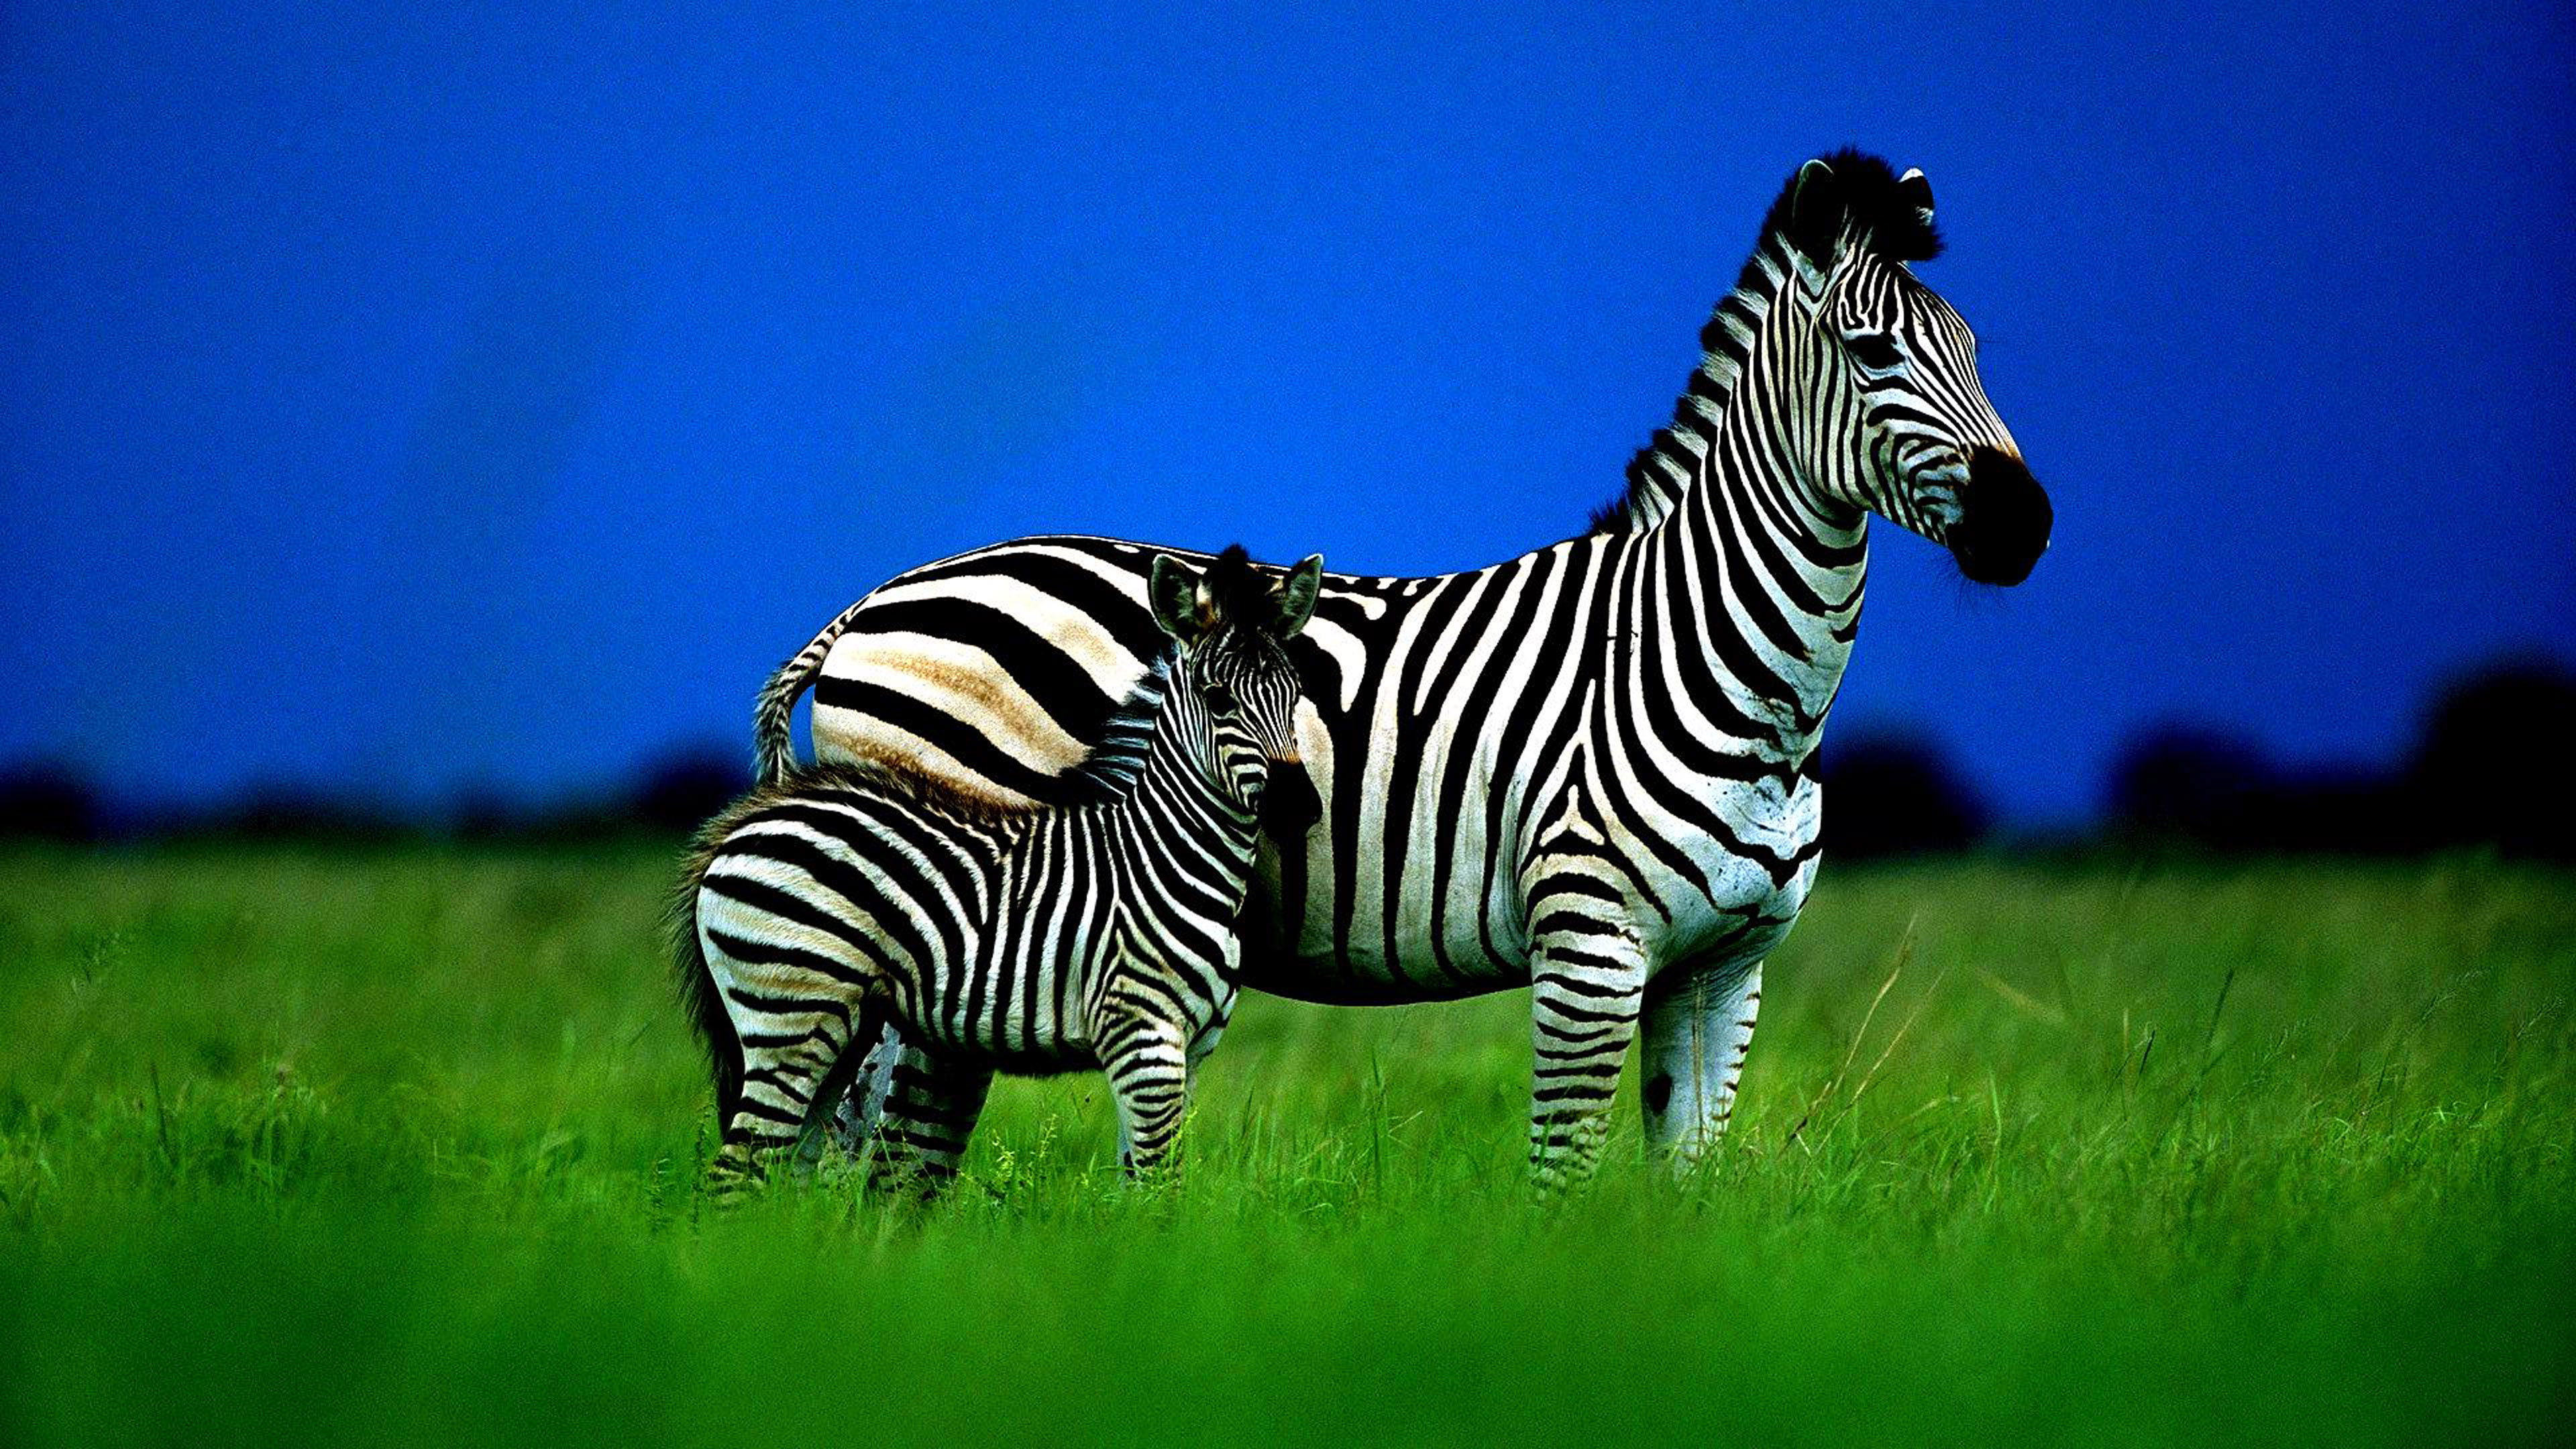 Cute Lock Screen Wallpapers For Iphone Zebra Family Striped Grass Sky Cub Hogh Contrast Hd